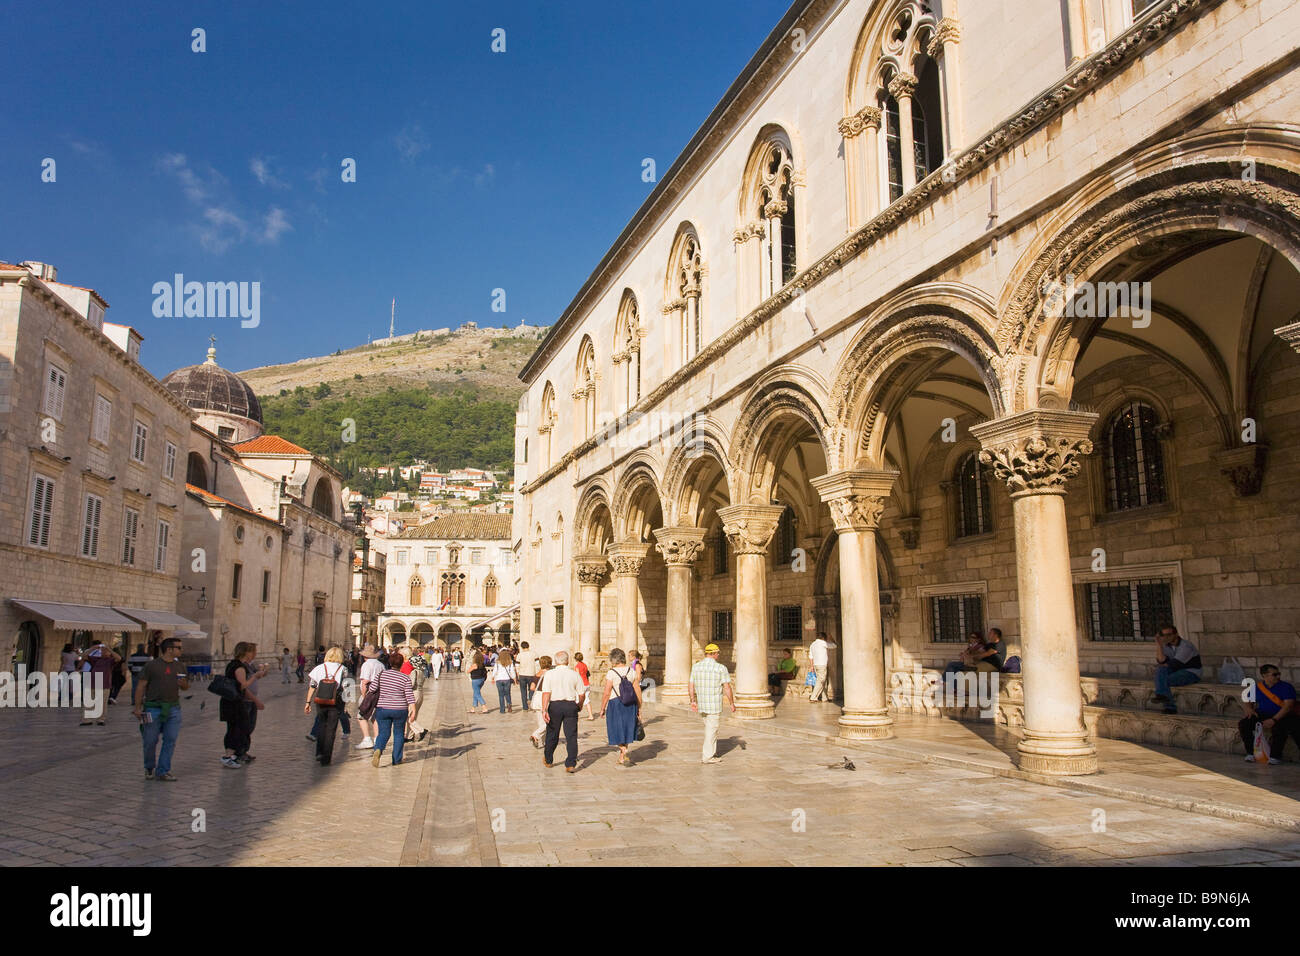 Tourists and visitors stroll outside the Rectors Palace in the walled city of Dubrovnik in summer sunshine Dalmatian - Stock Image